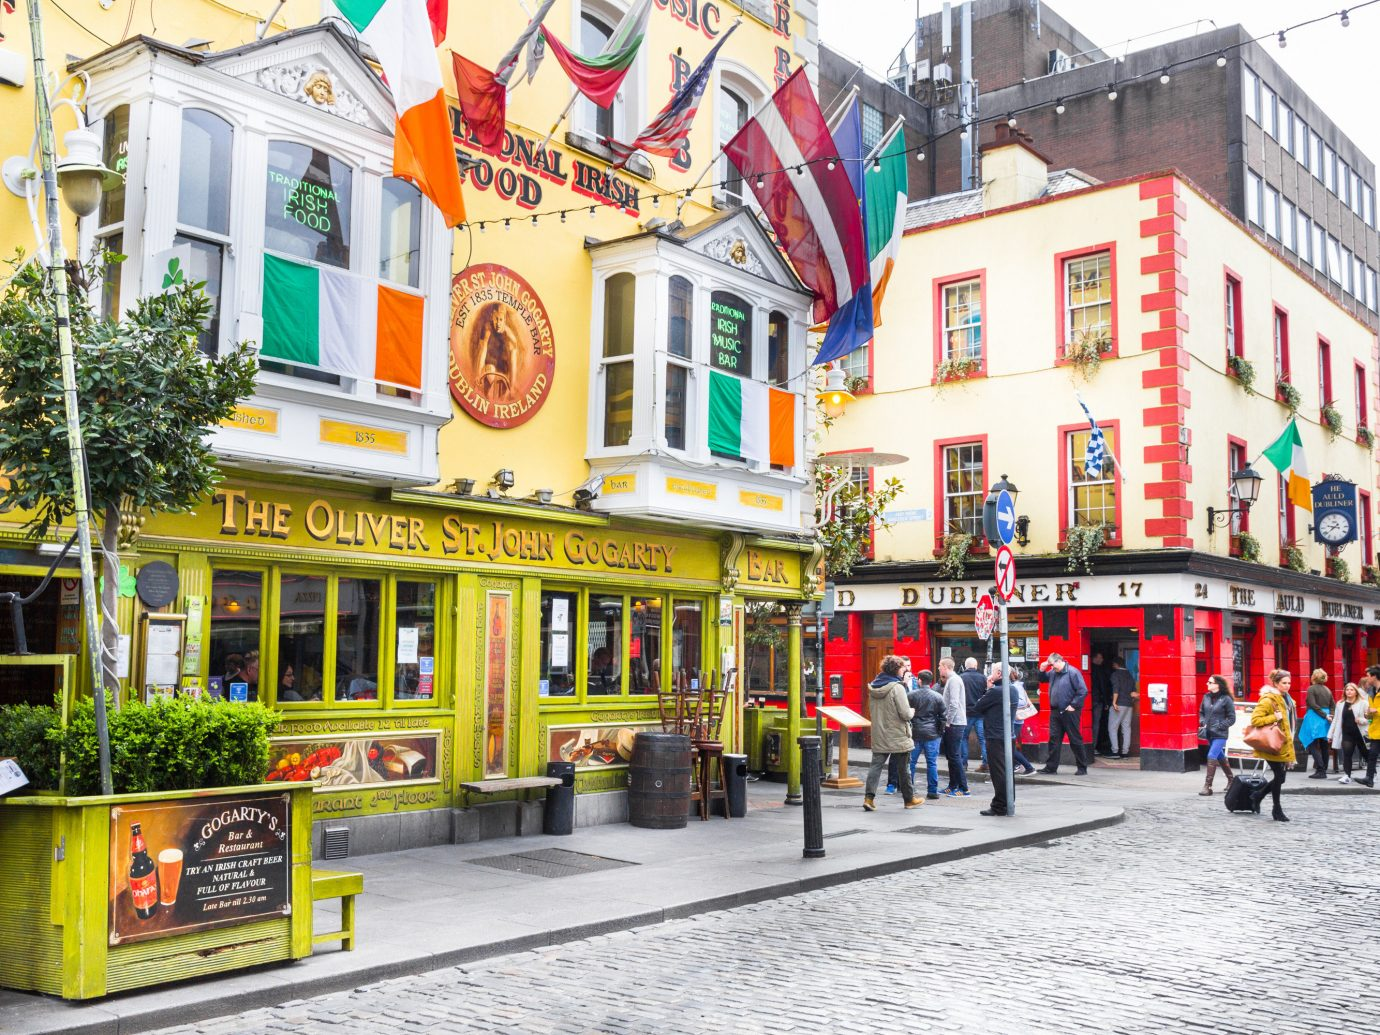 Dublin Ireland Travel Tips Trip Ideas building outdoor Town neighbourhood City street mixed use urban area scene way metropolitan area pedestrian metropolis town square facade marketplace sidewalk colorful